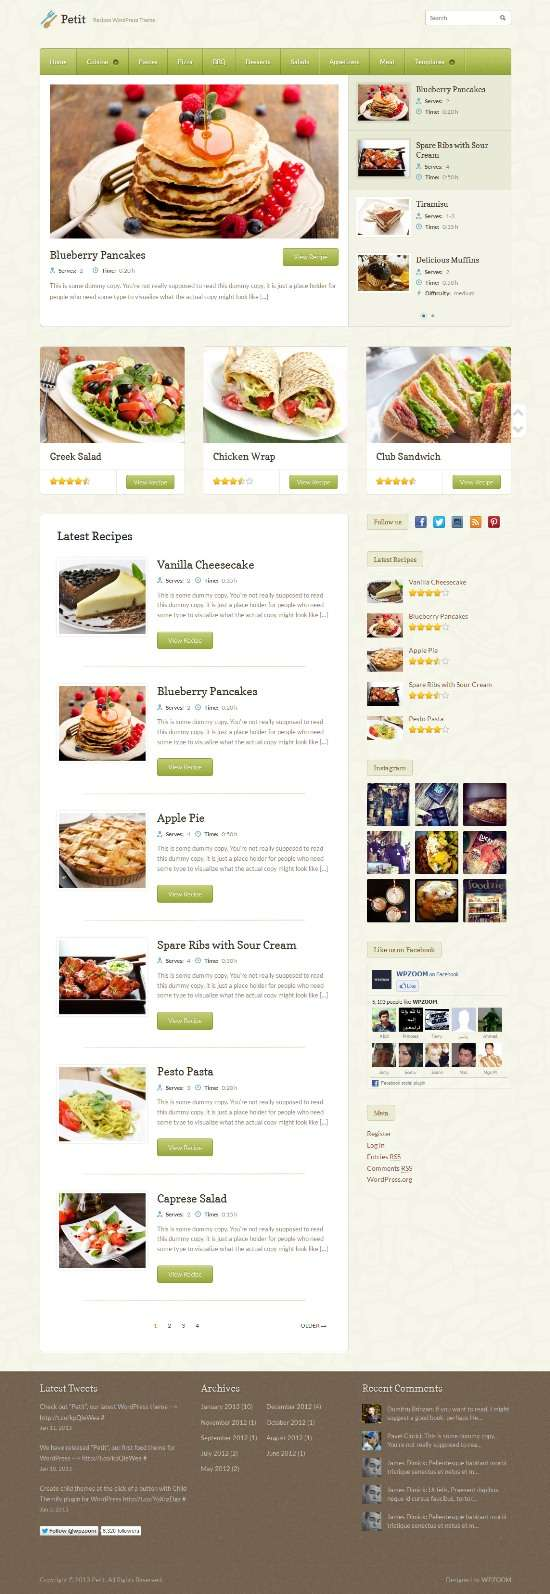 petit wpzoom avjthemescom 01 - Petit WordPress Theme